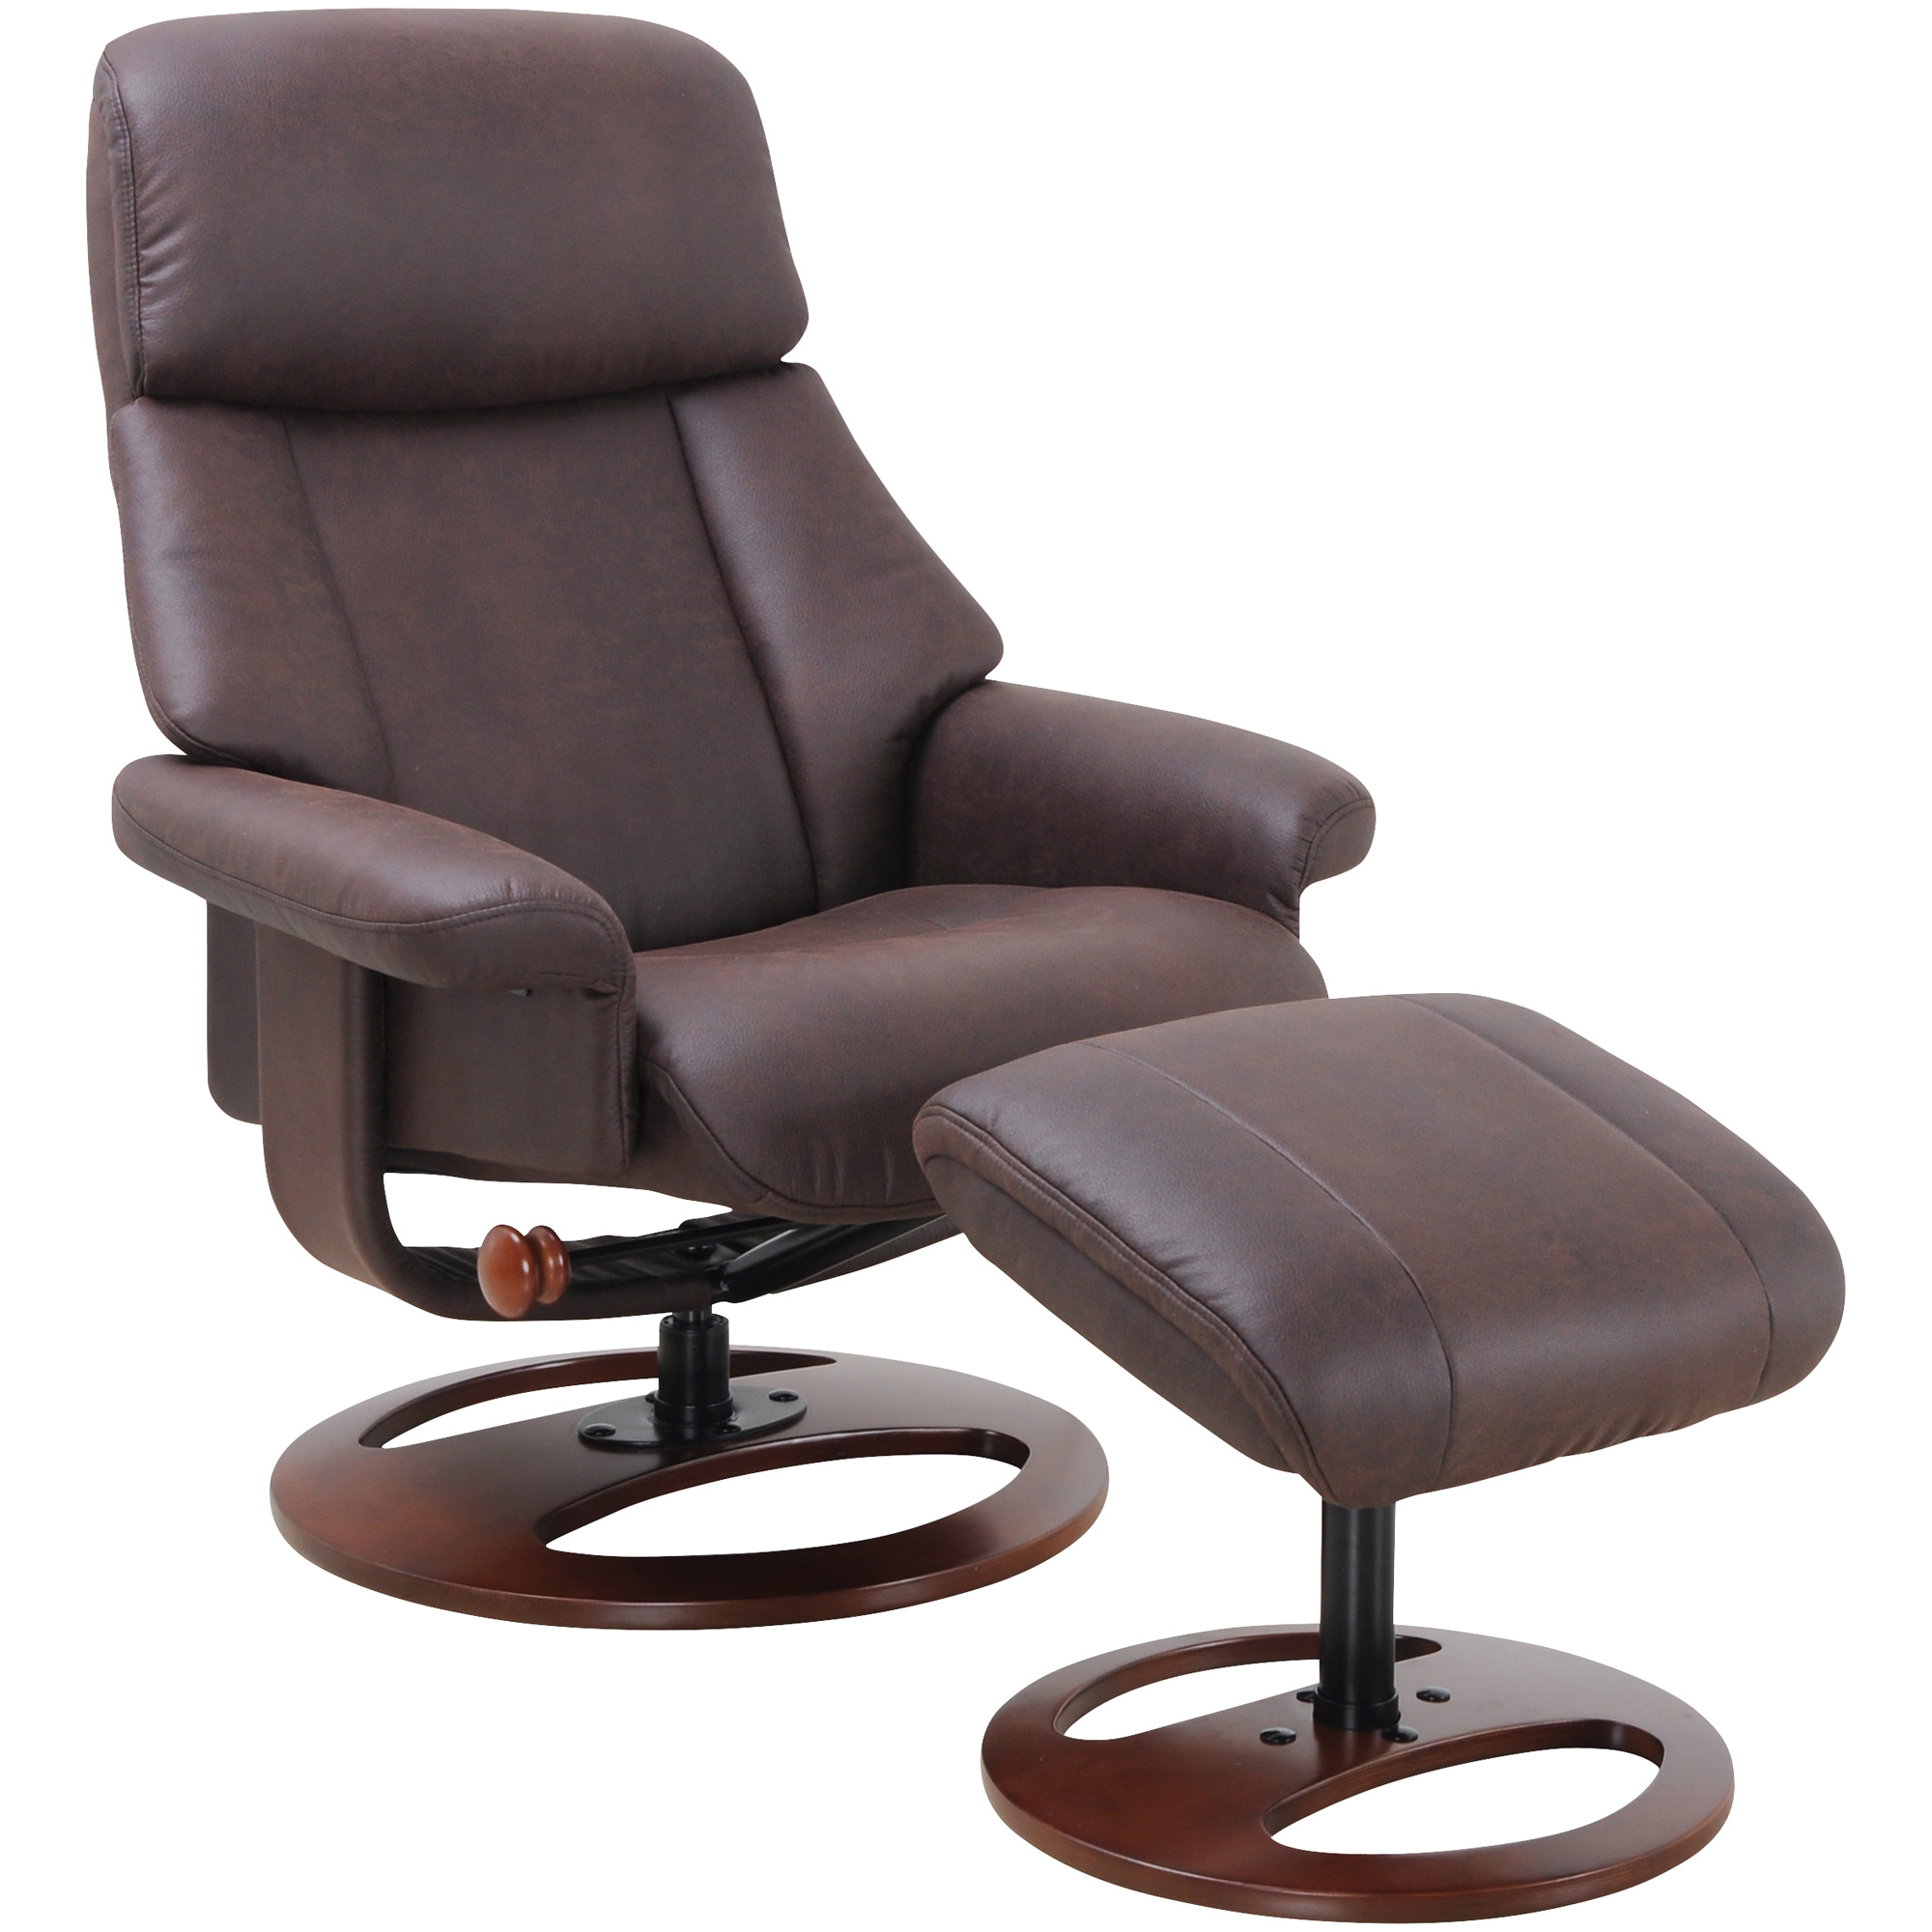 Benchmaster | Heritage II Brown Recliner Chair with Ottoman